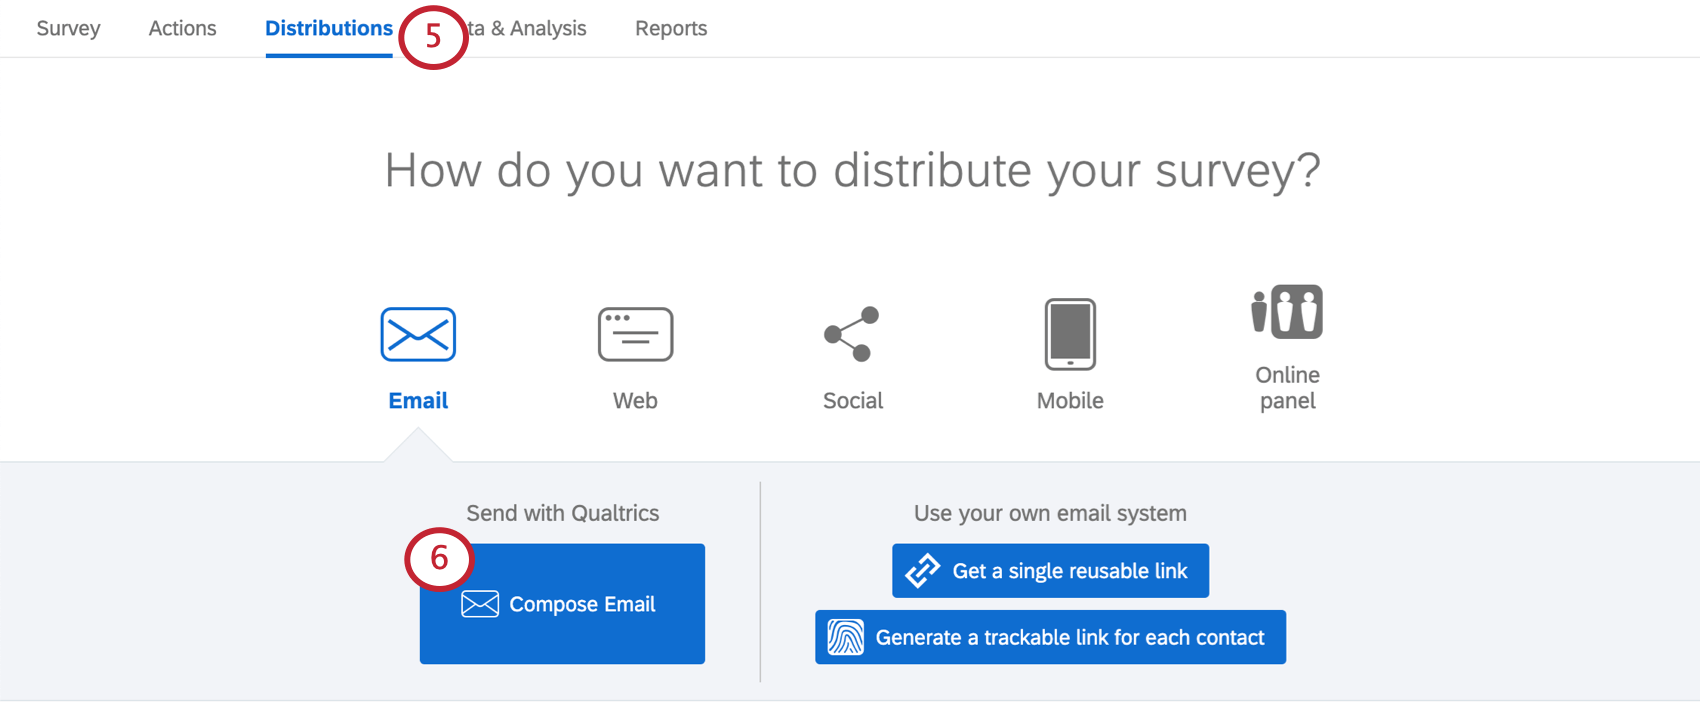 Email option in distributions tab